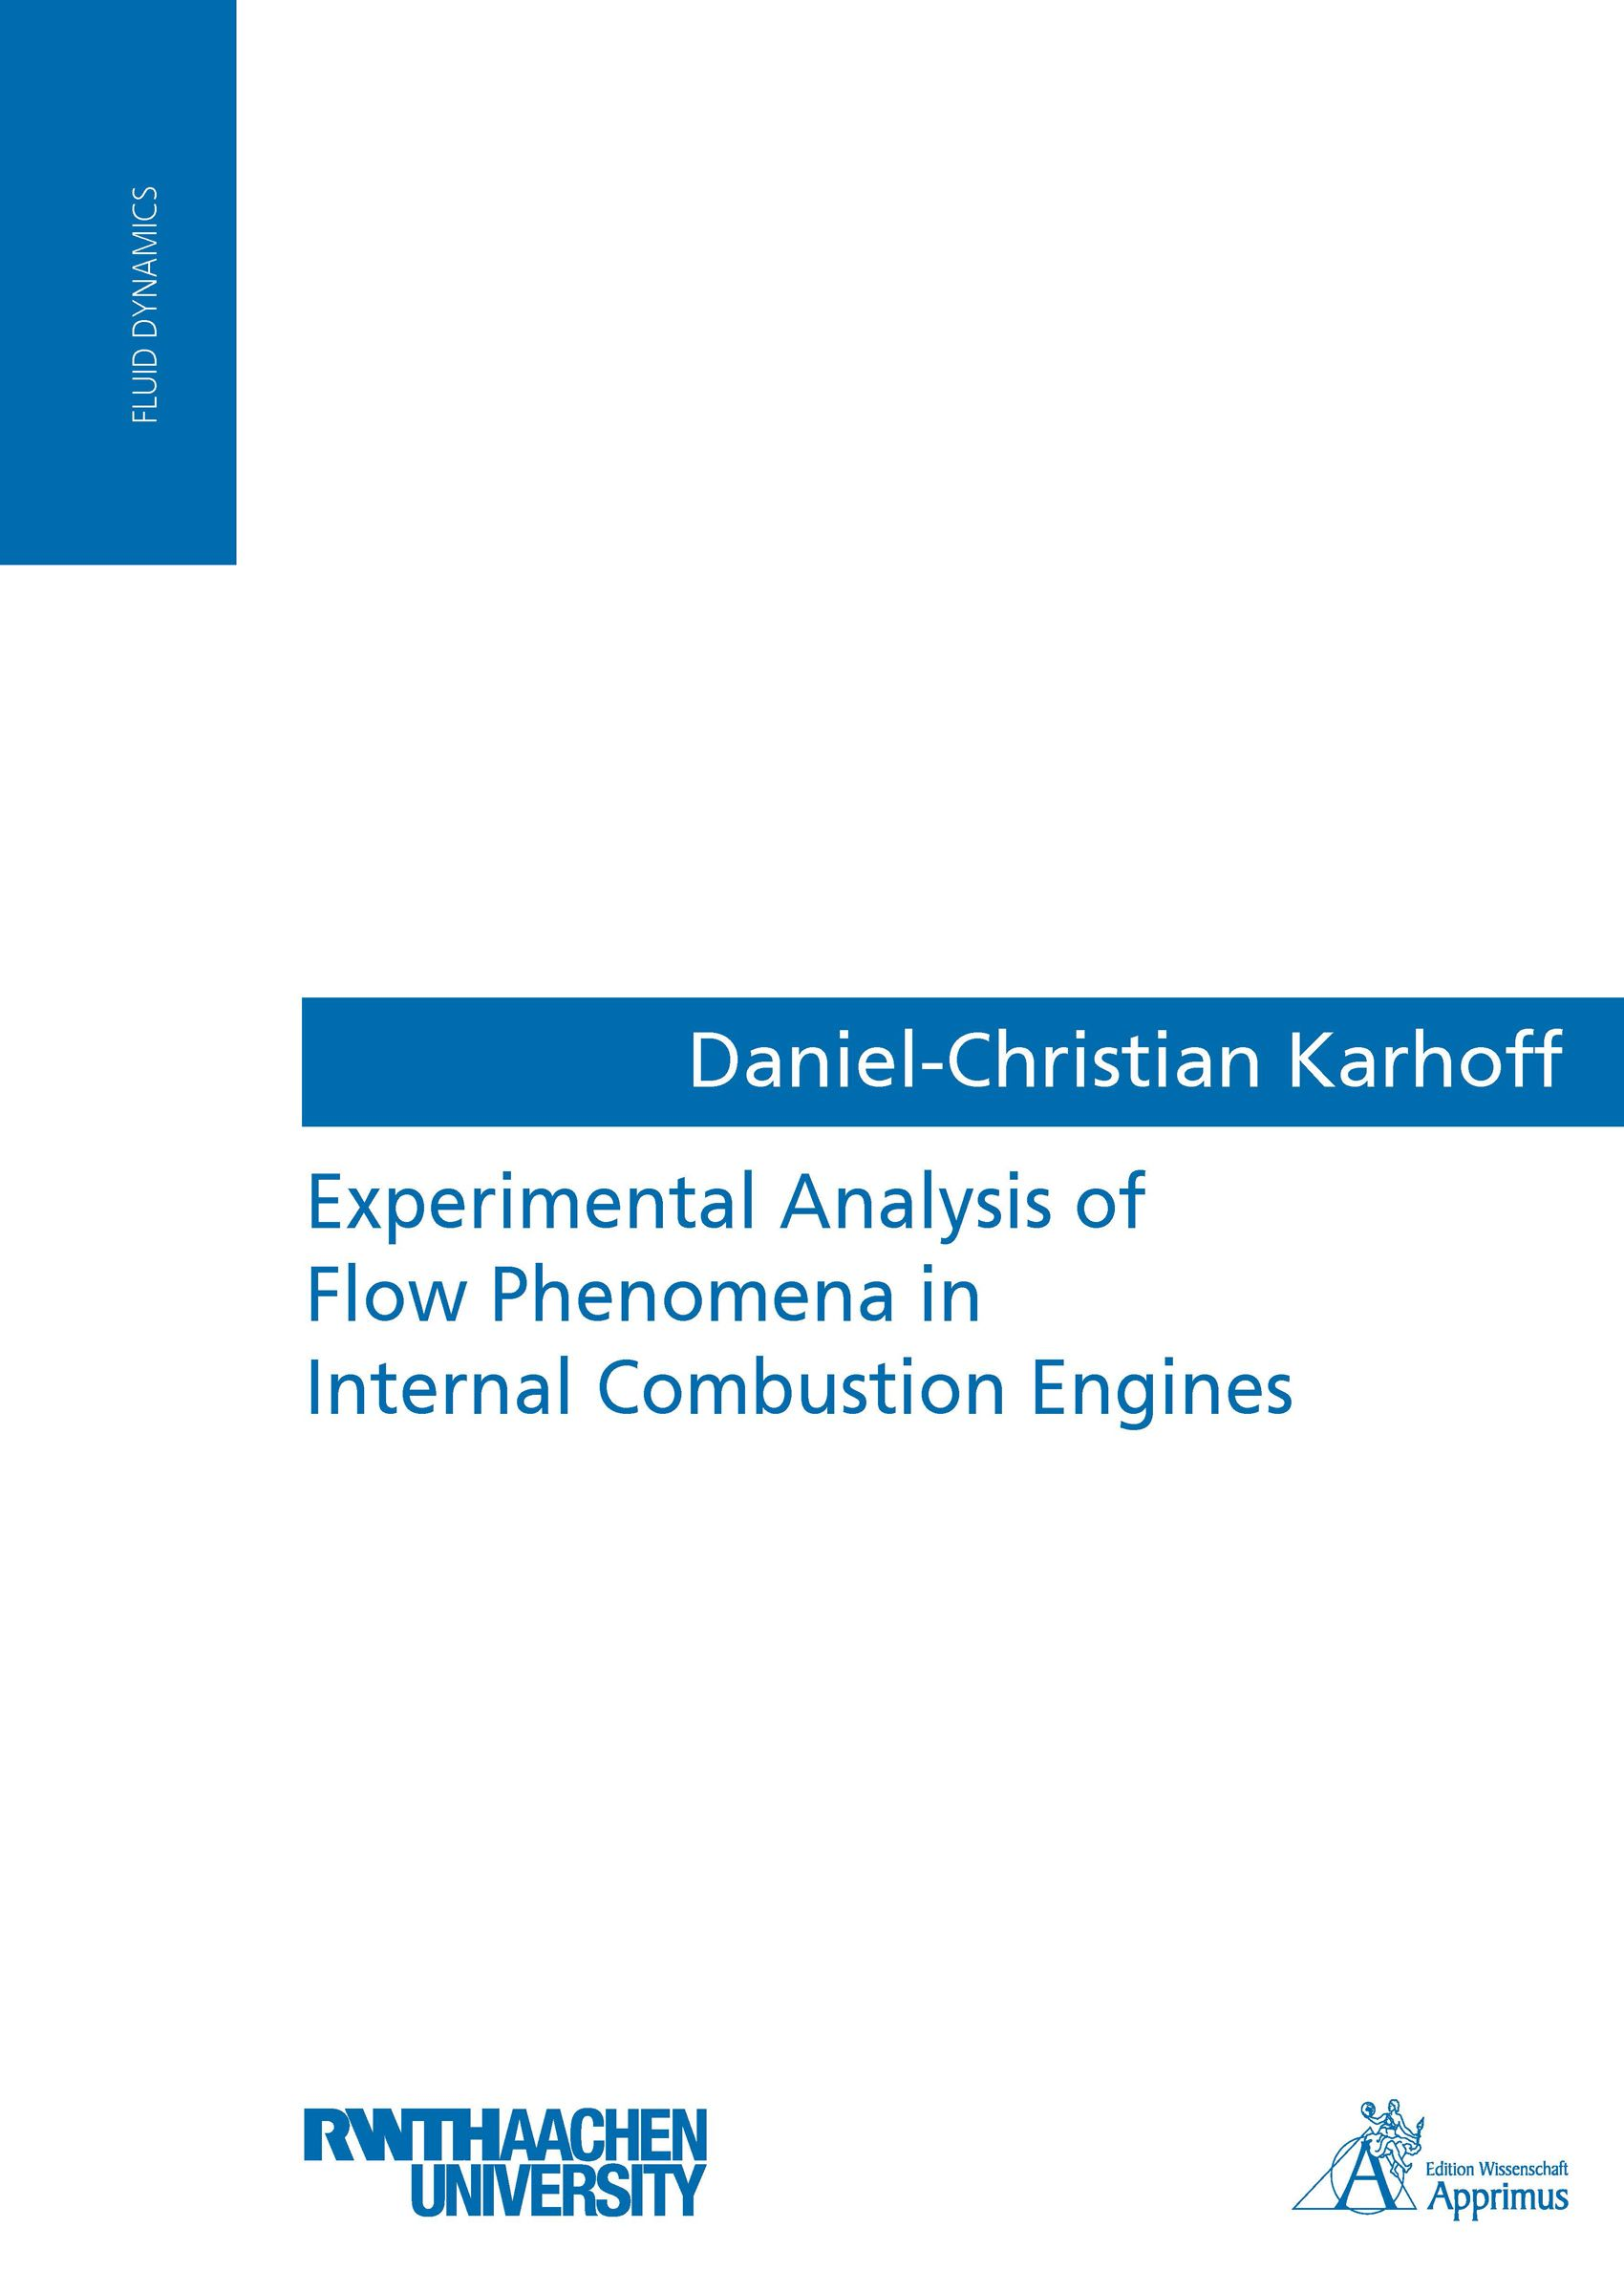 Experimental Analysis of Flow Phenomena in Internal Combustion Engines